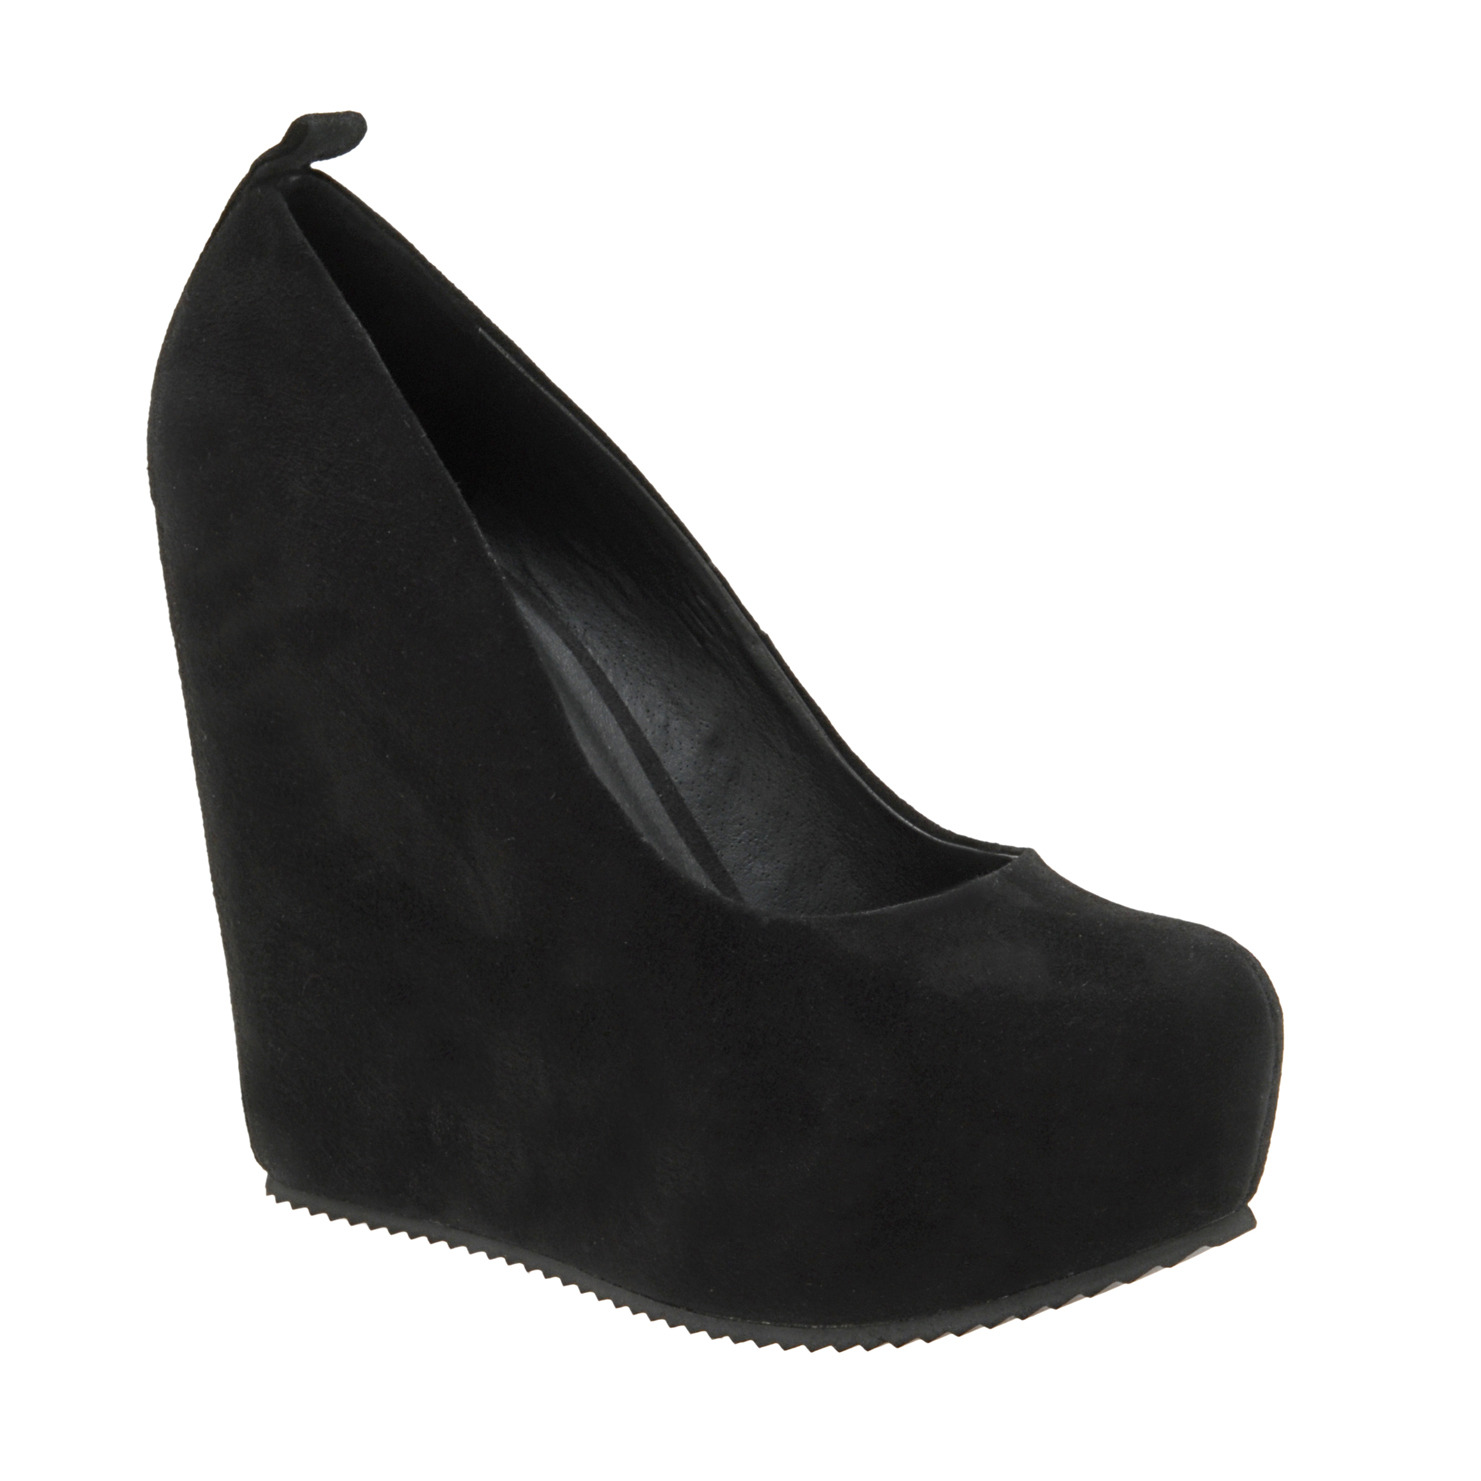 excSHOESme: WANTED: Black Wedge Pumps